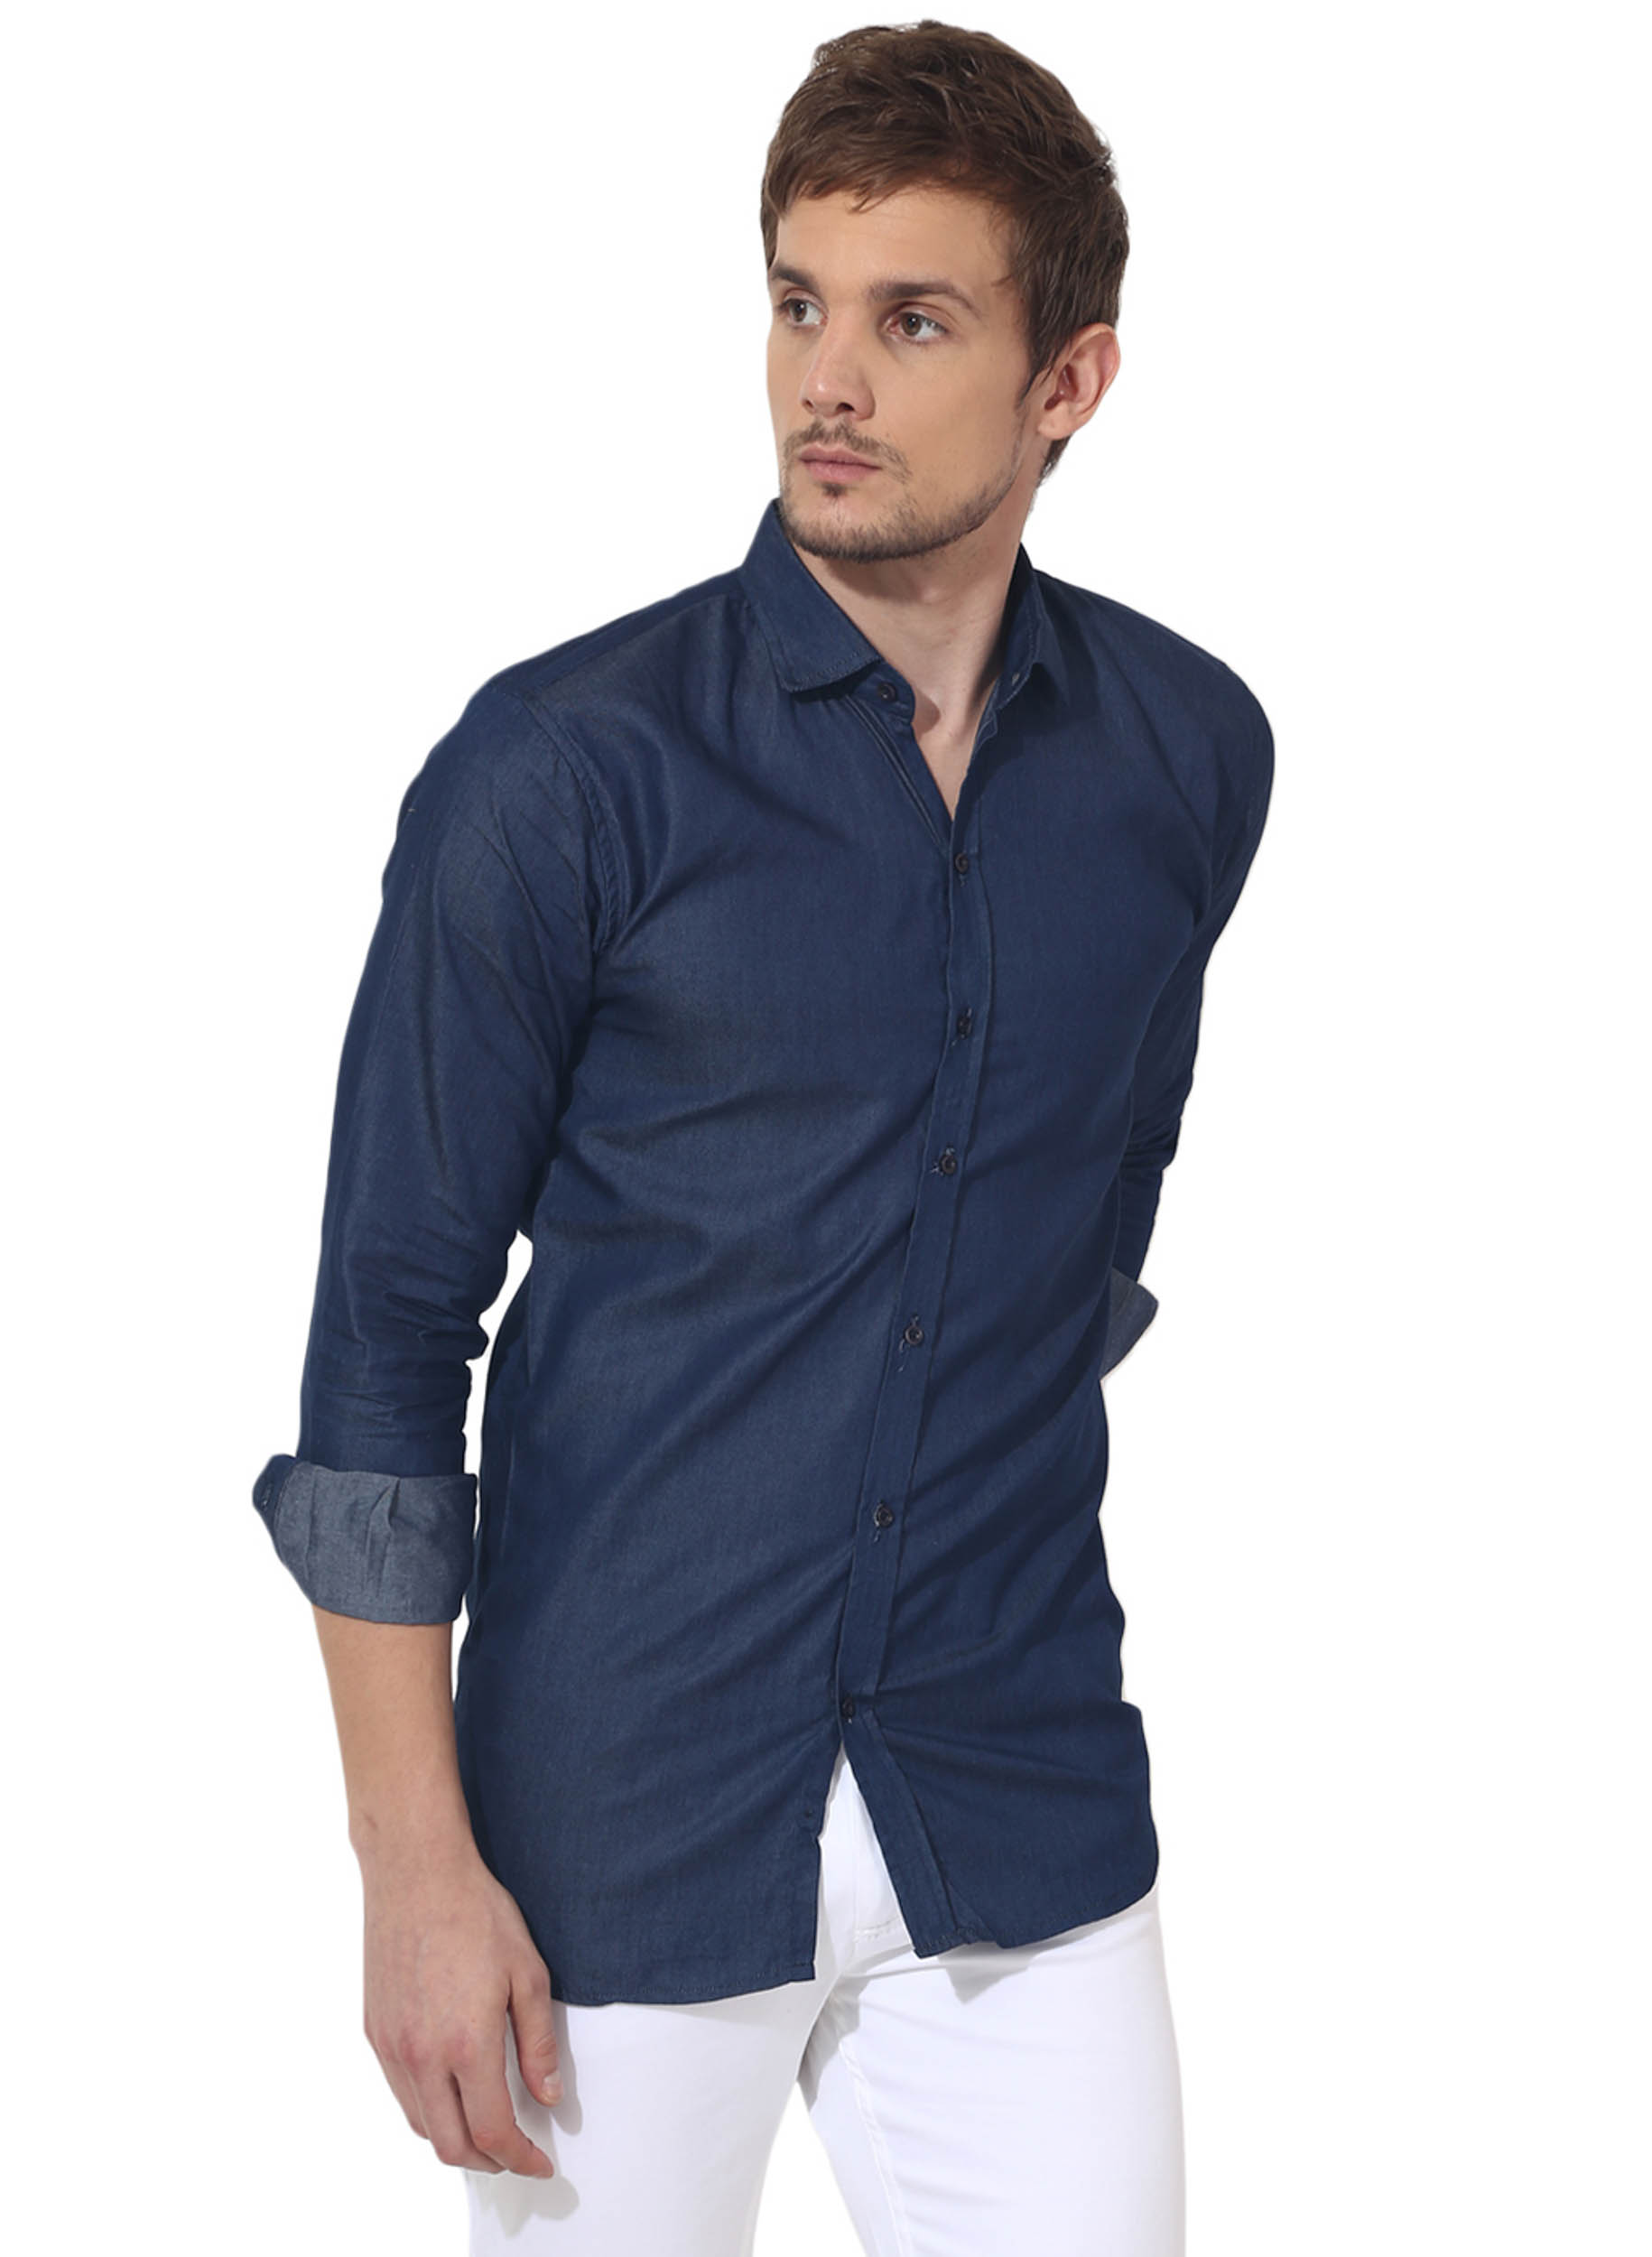 Blue denim solid casual shirt